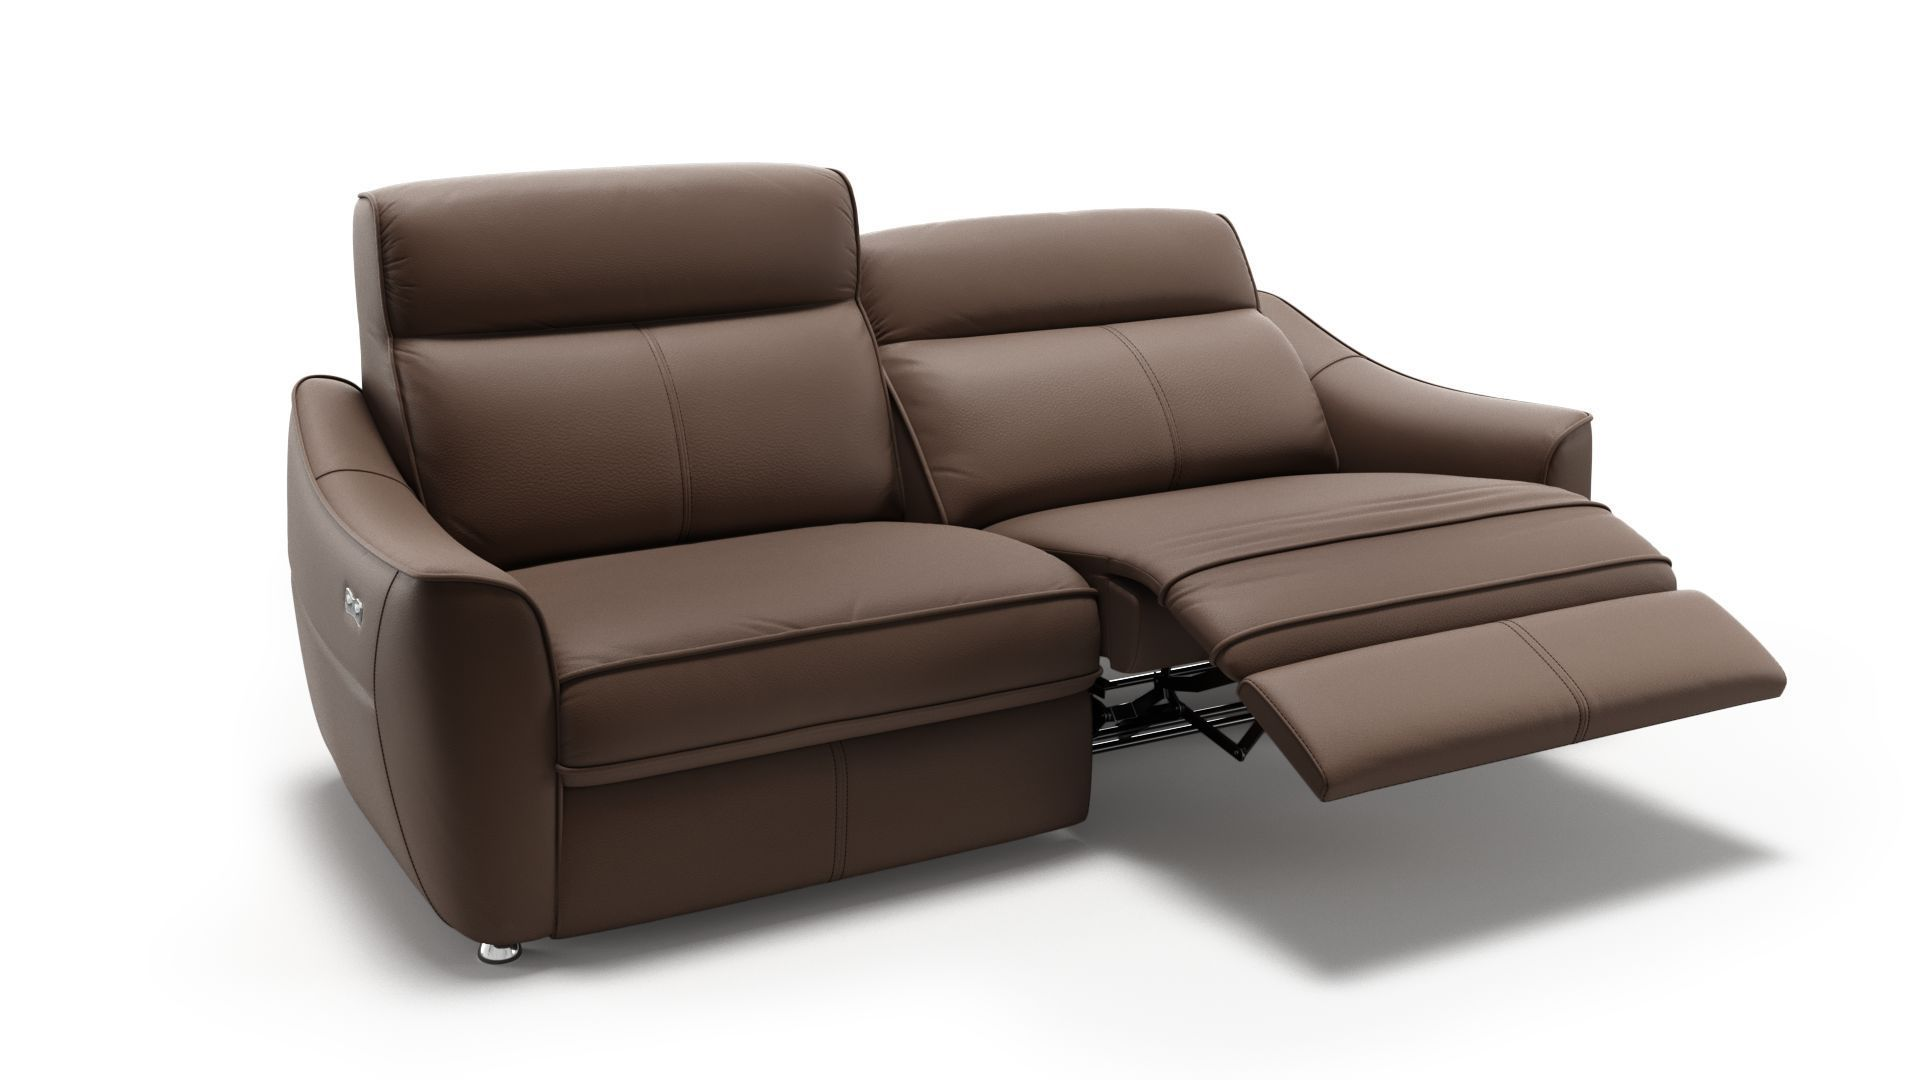 23 Schone Sofa 3 1 Couch Mobel Sofa Mit Relaxfunktion Sofa